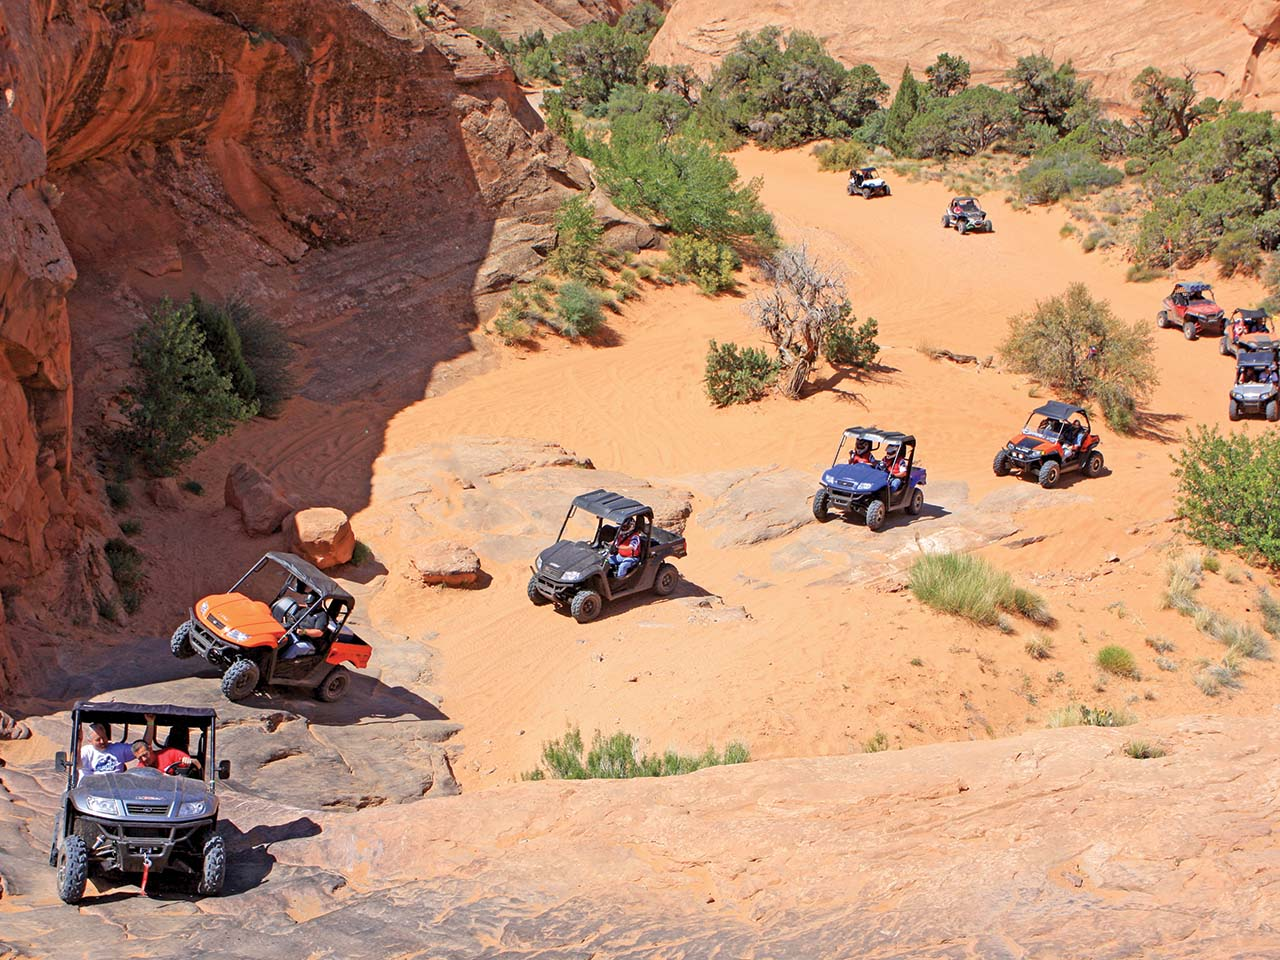 2012.location.moab-utah.arctic-cat-rally-on-the-rocks-event.line-of-side-x-sides